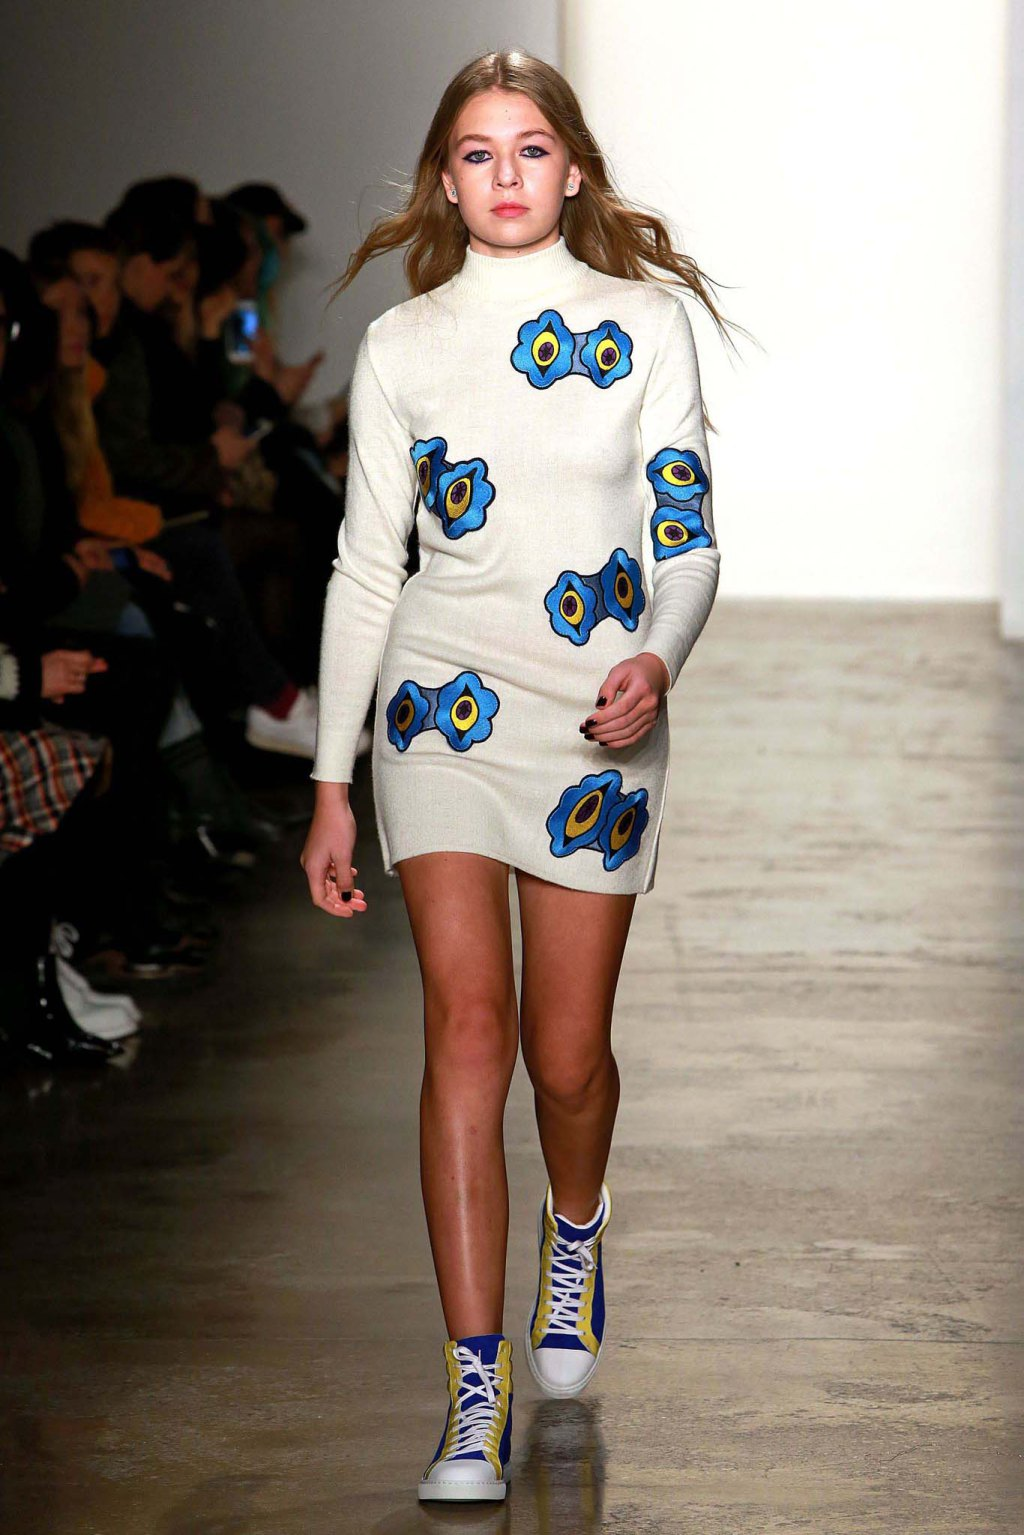 NYFW Anna K Fashion Show Fall Winter 2016 Louboutins & Love Fashion Blog Esther Santer NYC Street Style Models Collection Hair Makeup Dress Trendy Pretty Pattern Print Spaceship Fun Sneakers Red Yellow Blue Colorful Skirt Shoes Plaid Scarf Coat Outfit.jpg